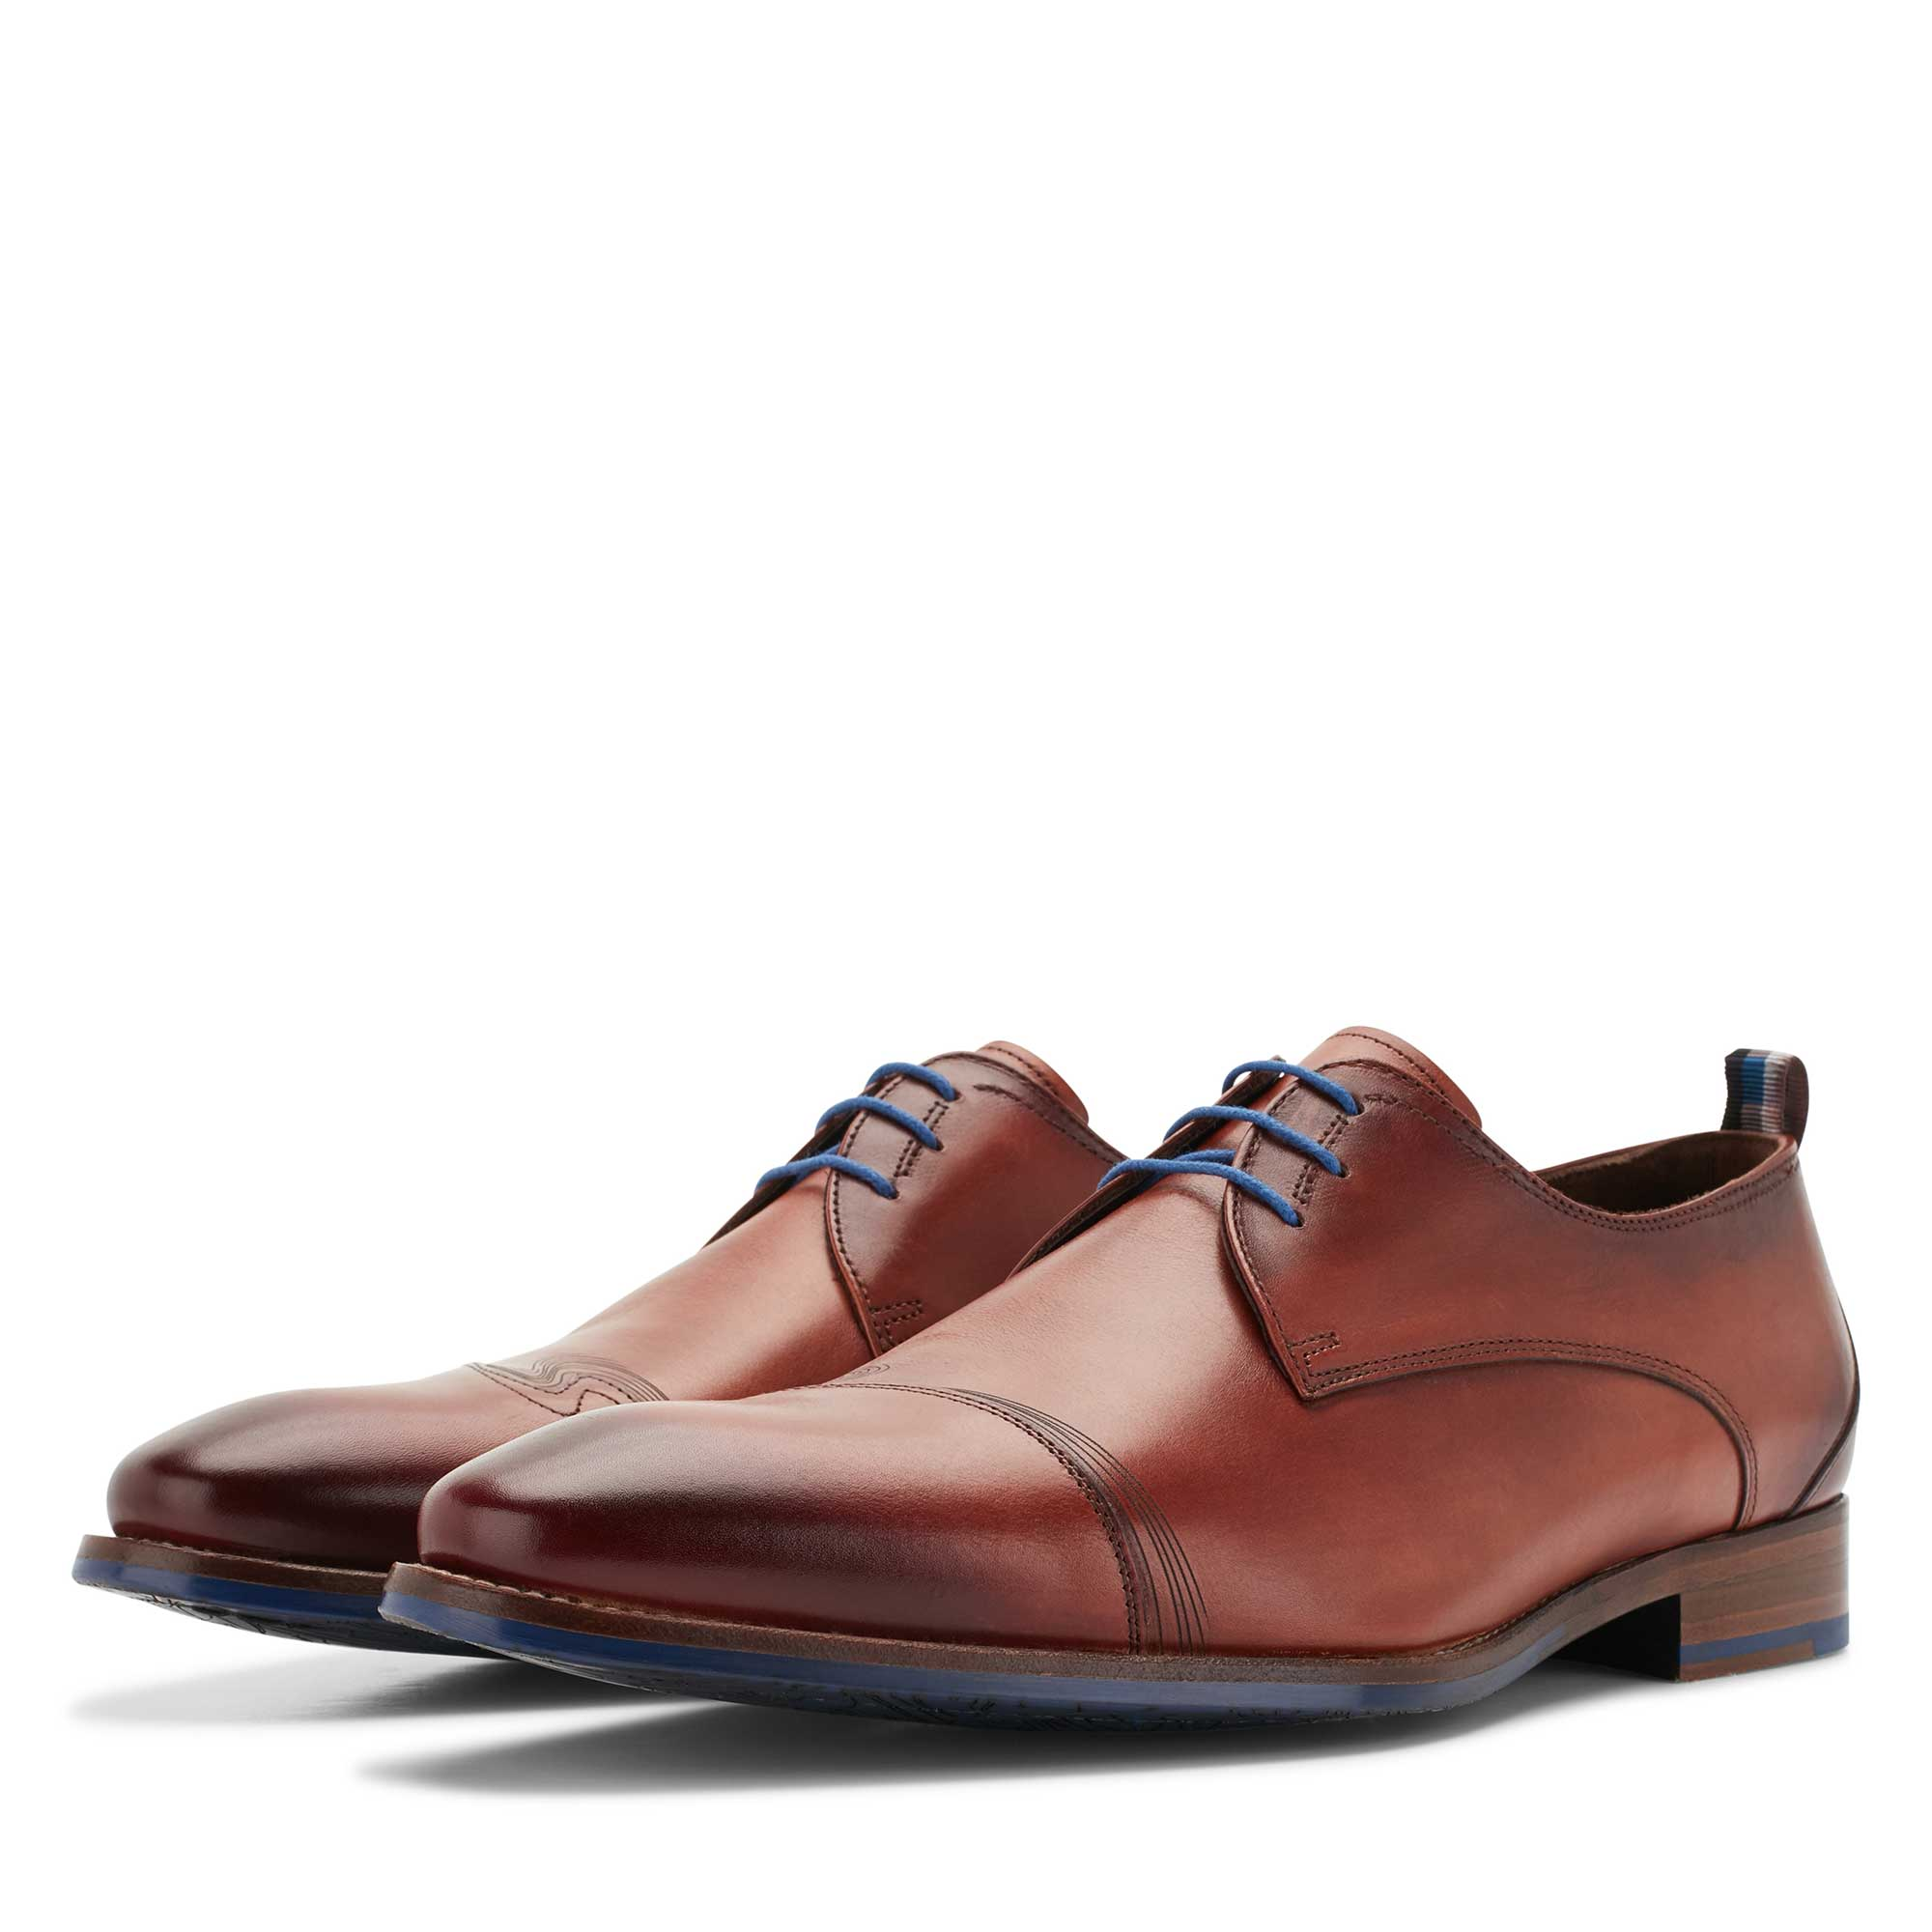 18006/00 - Floris van Bommel cognac-coloured men's leather lace shoe